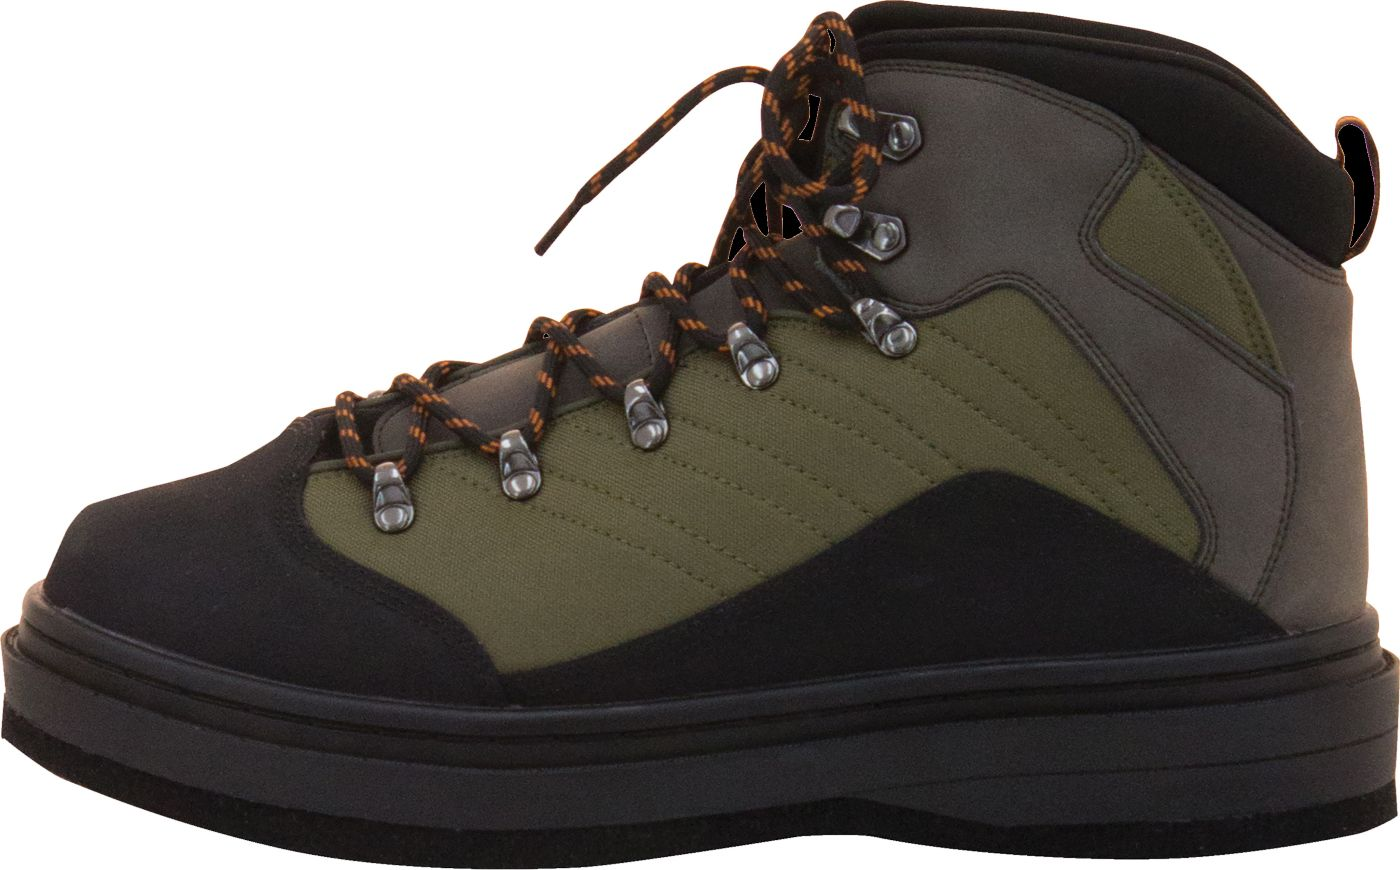 frogg toggs Men's Anura II Technical Cleated Wading Boots